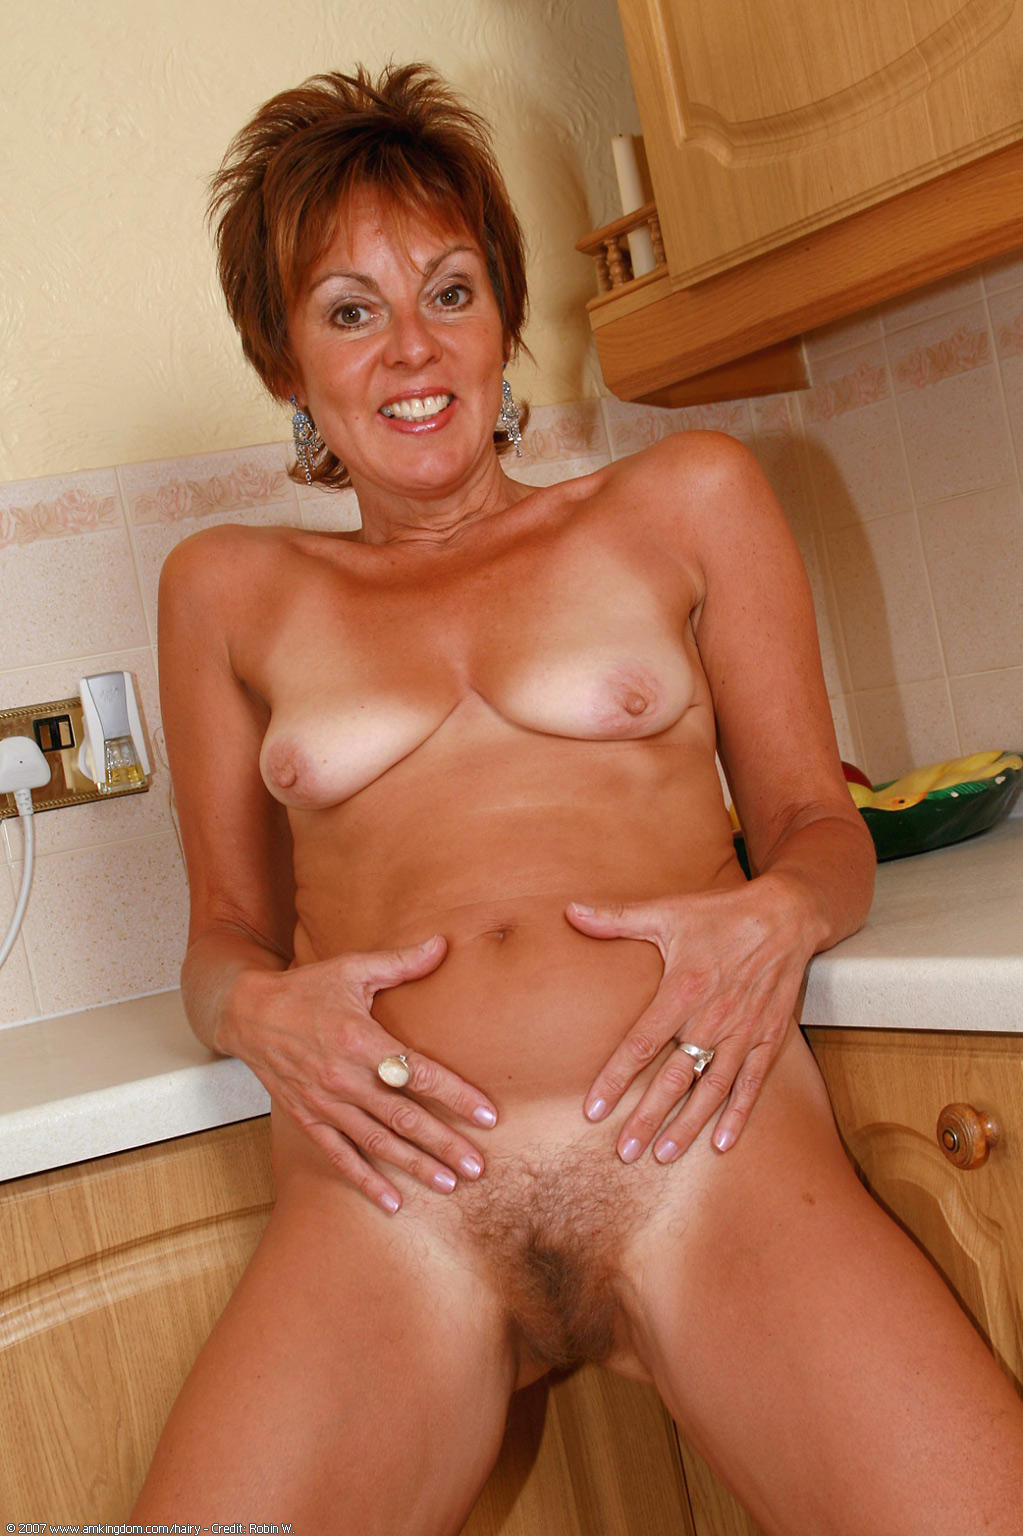 grandma mature porn Older Finger - Your Source of Free Granny Porn Movies and Older.